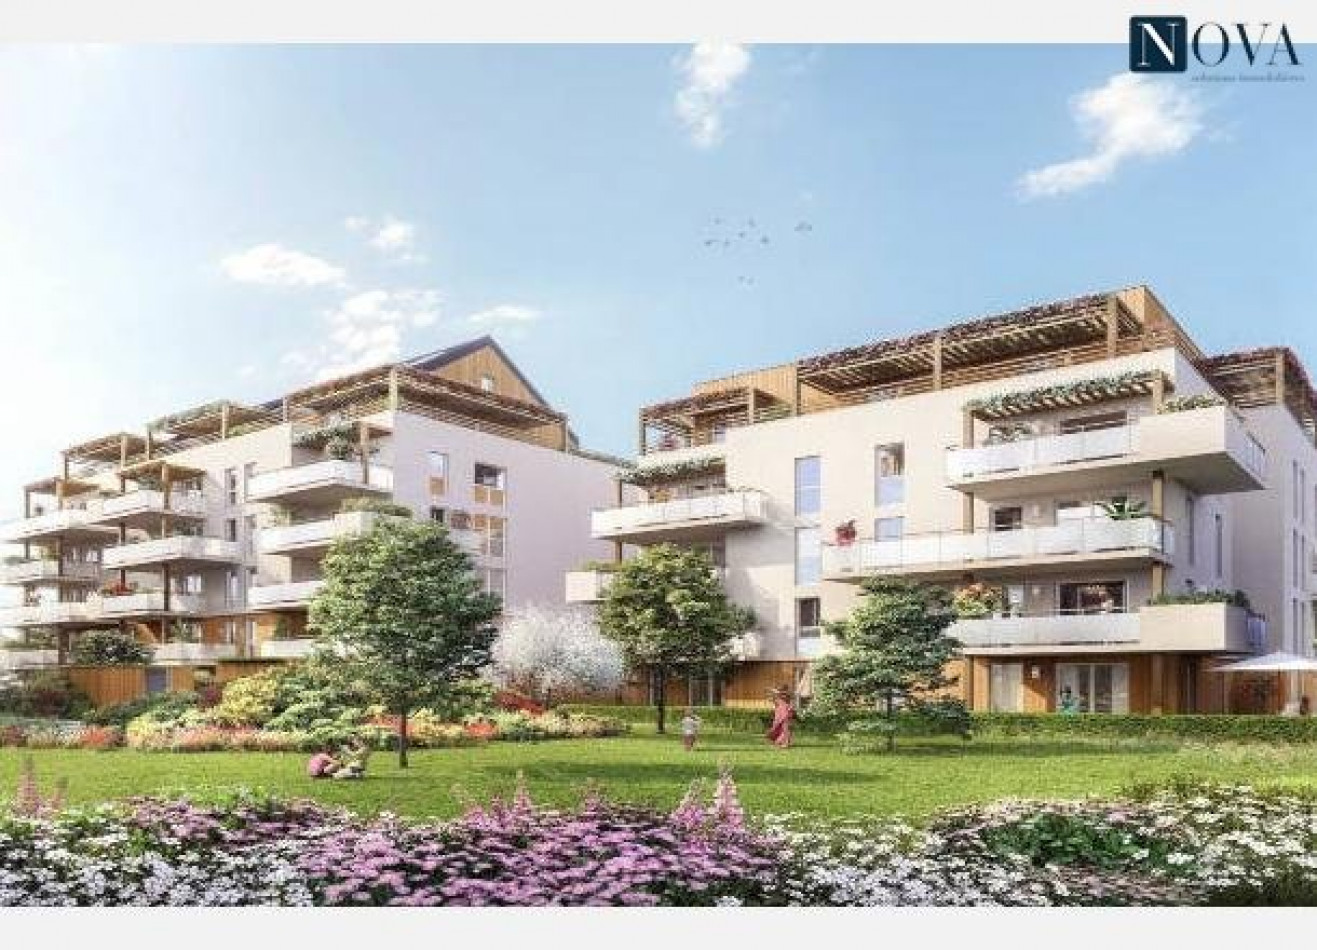 A vendre  Rumilly | Réf 74029619 - Nova solutions immobilieres